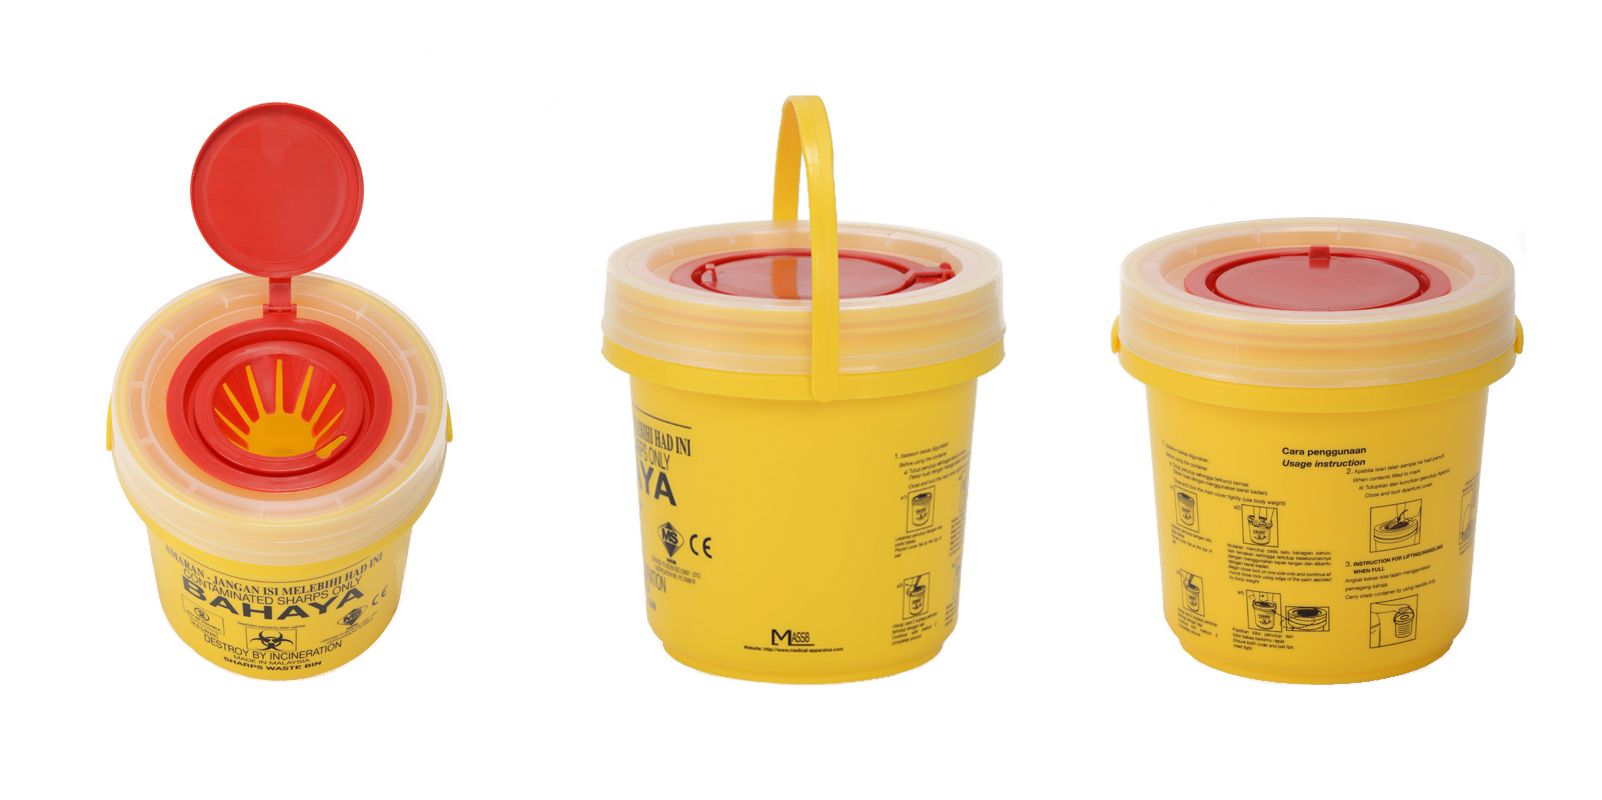 Sharps Waste Bins, Sharps Container, Sharps Containers